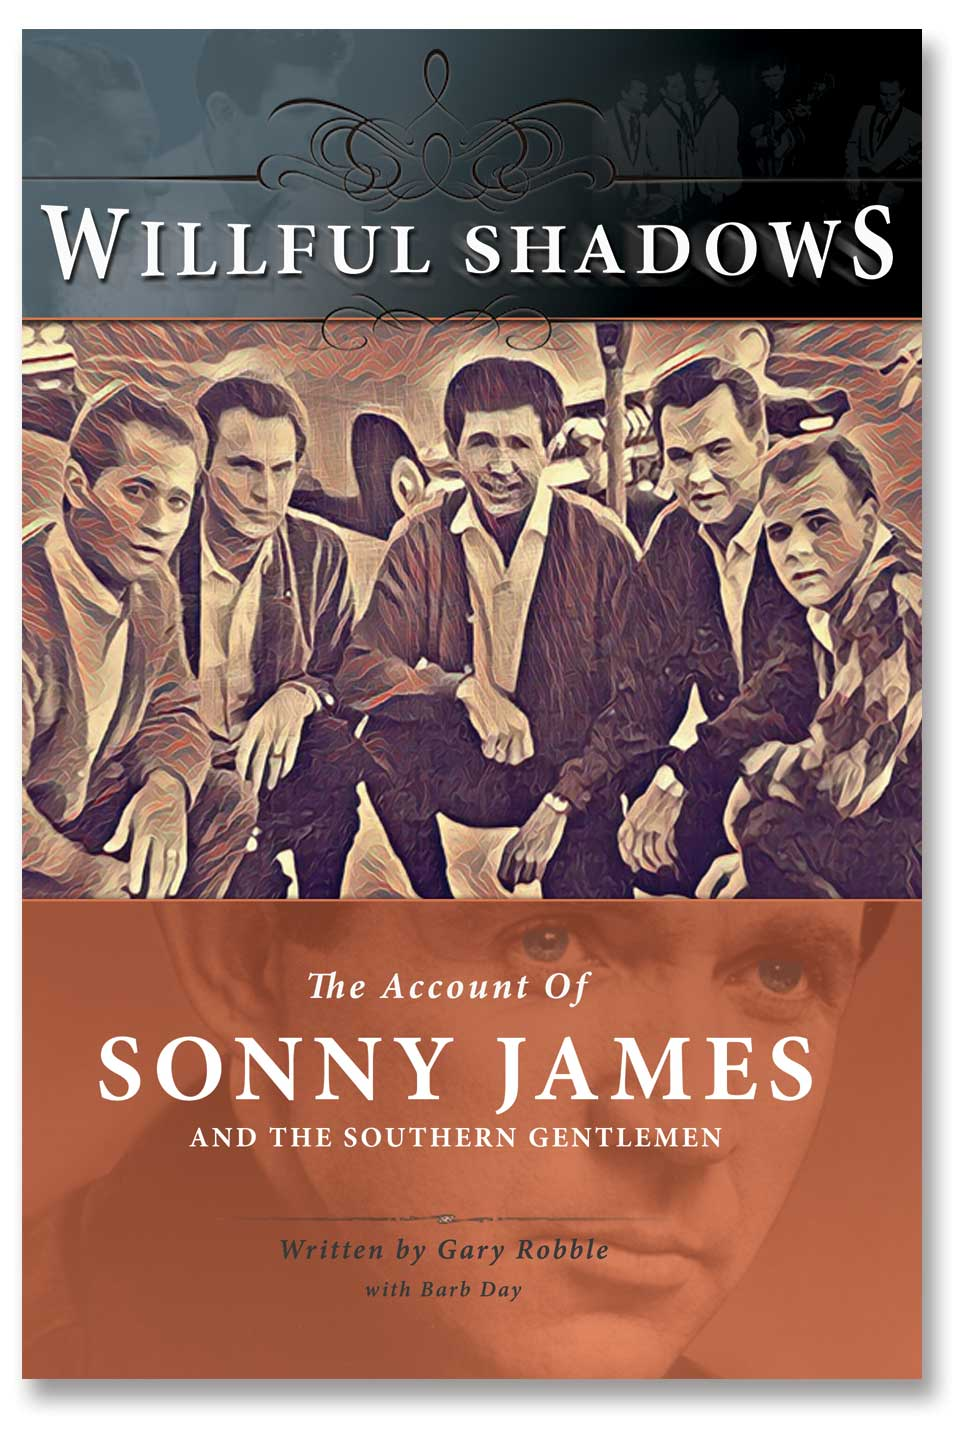 Willful Shadows book cover with image of Sonny and The Southern Gentlemen on a sidewalk